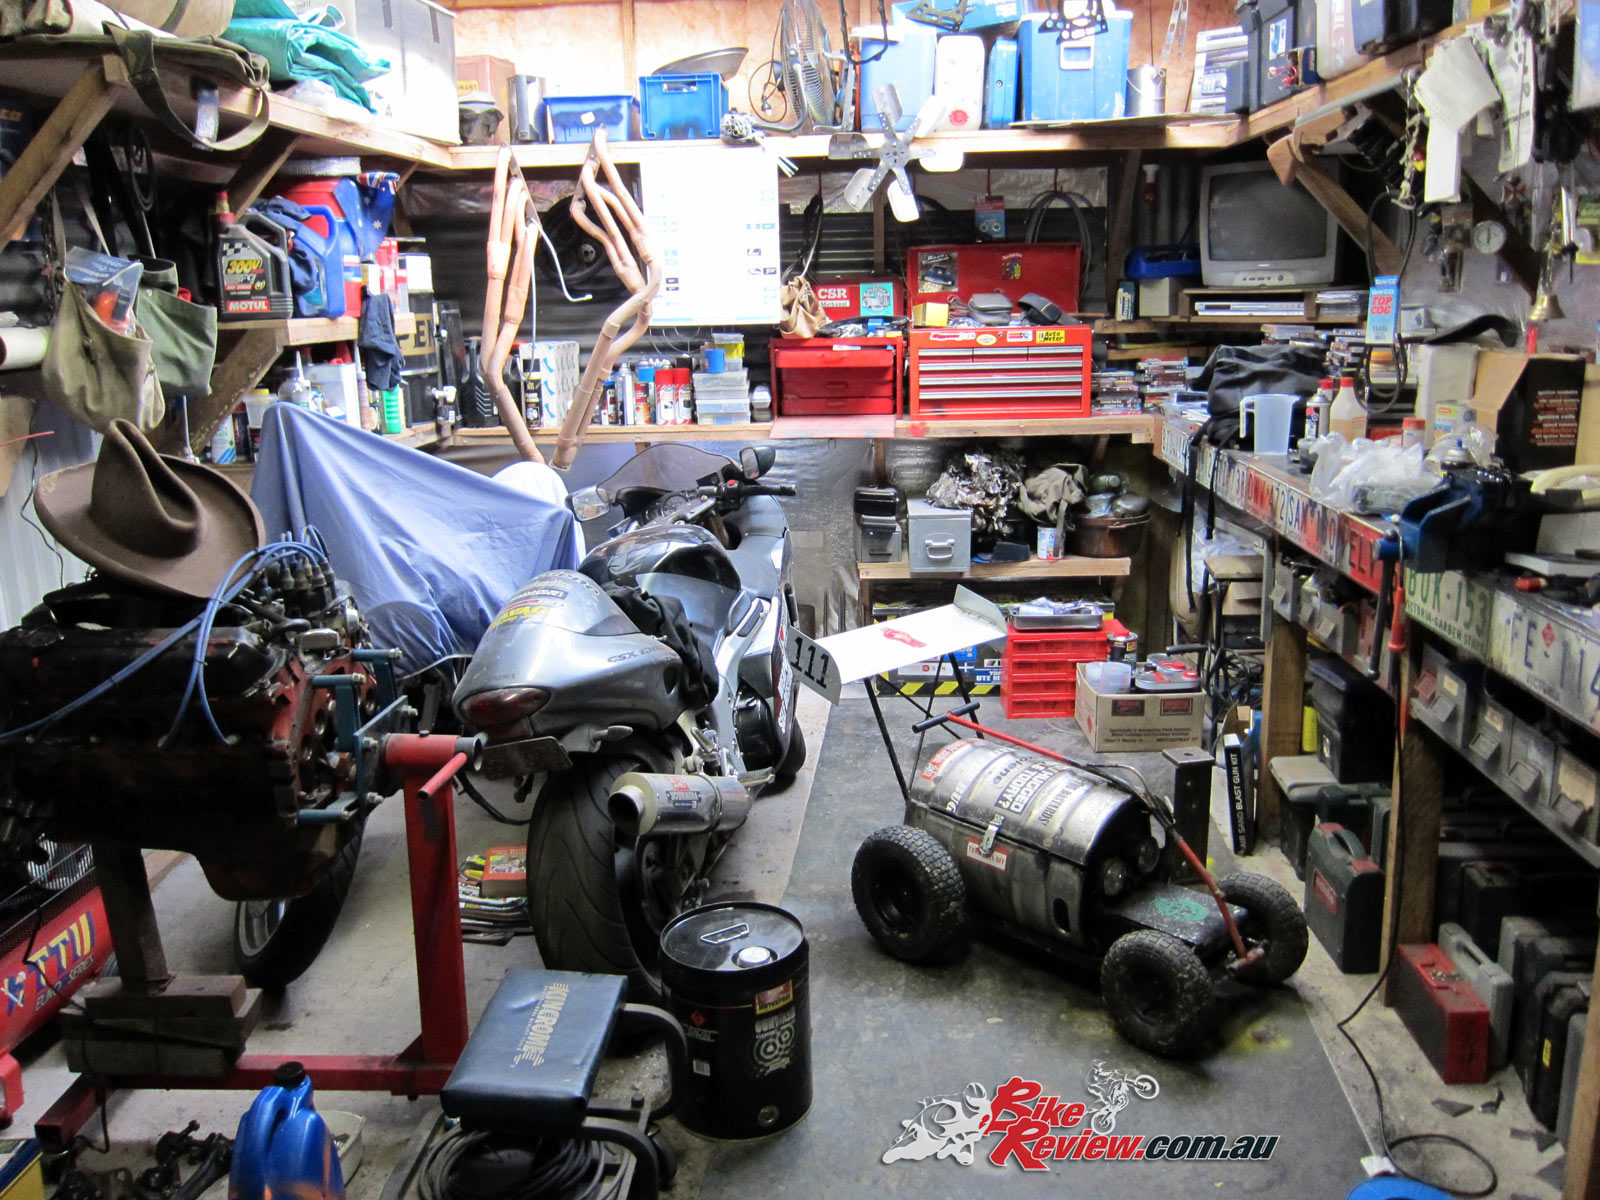 A well stocked shed, with tools, machinery and literature